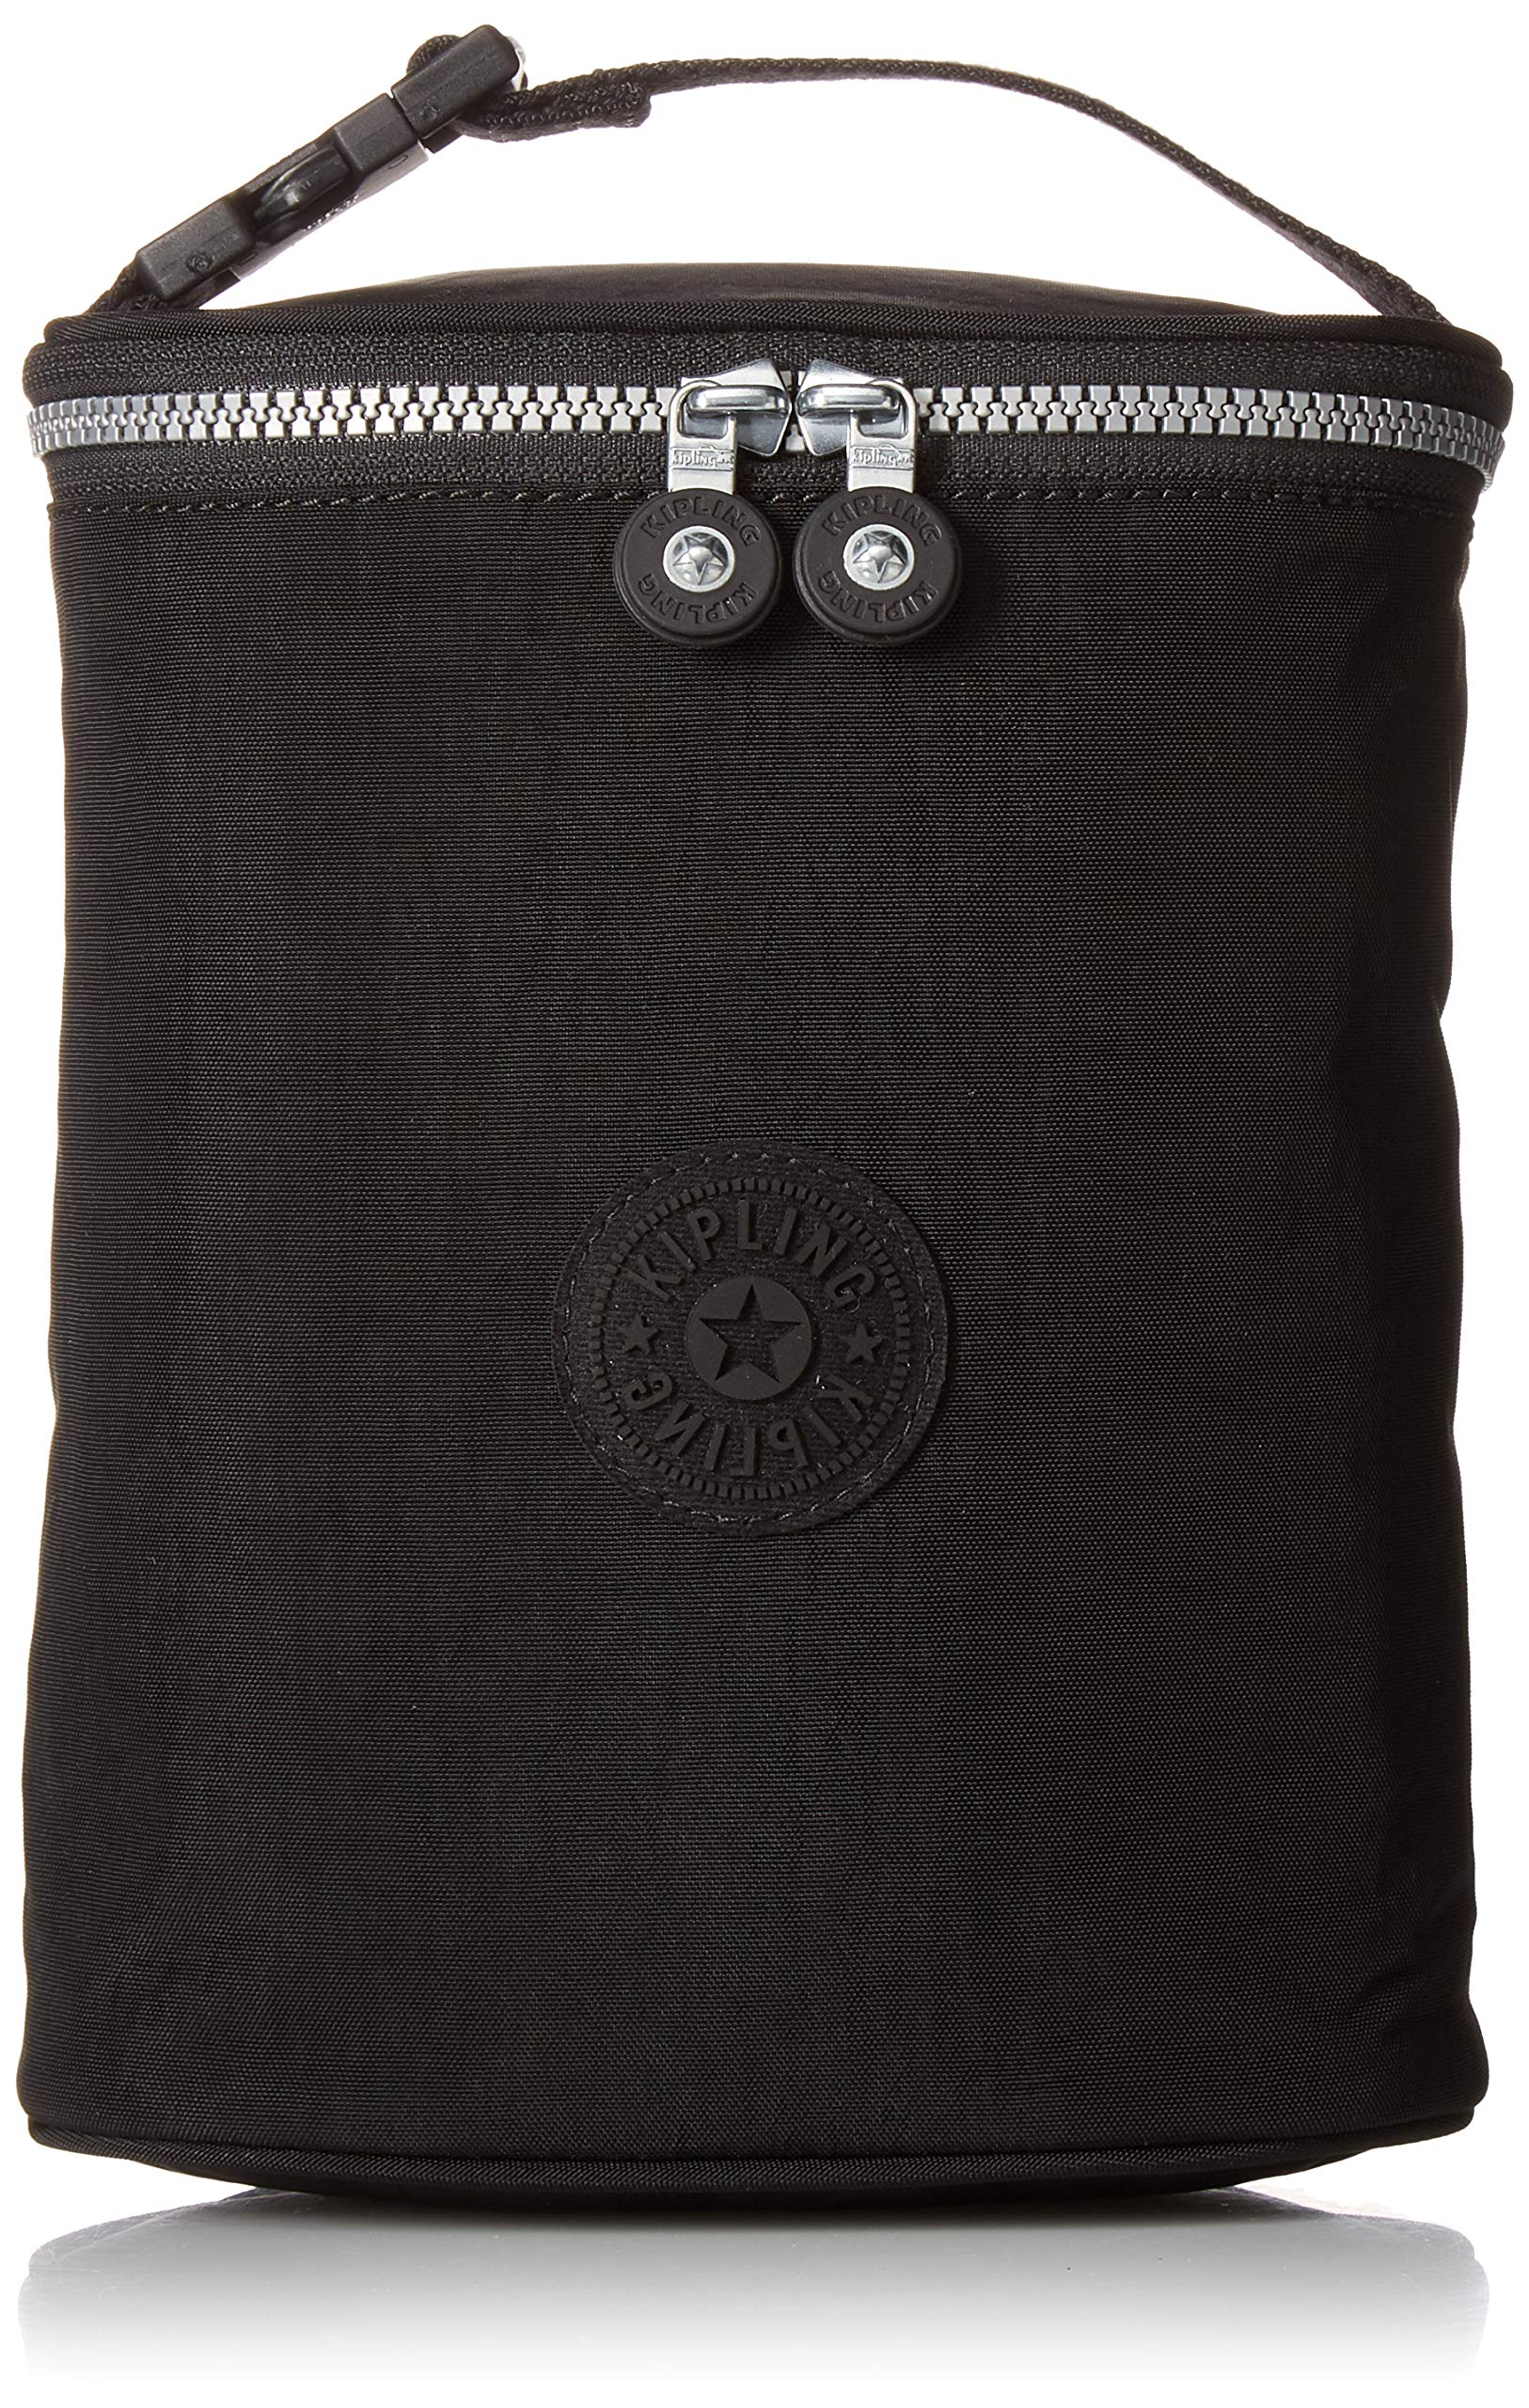 Kipling Insulated Baby Bottle Holder, Clip On Strap, Black by Kipling